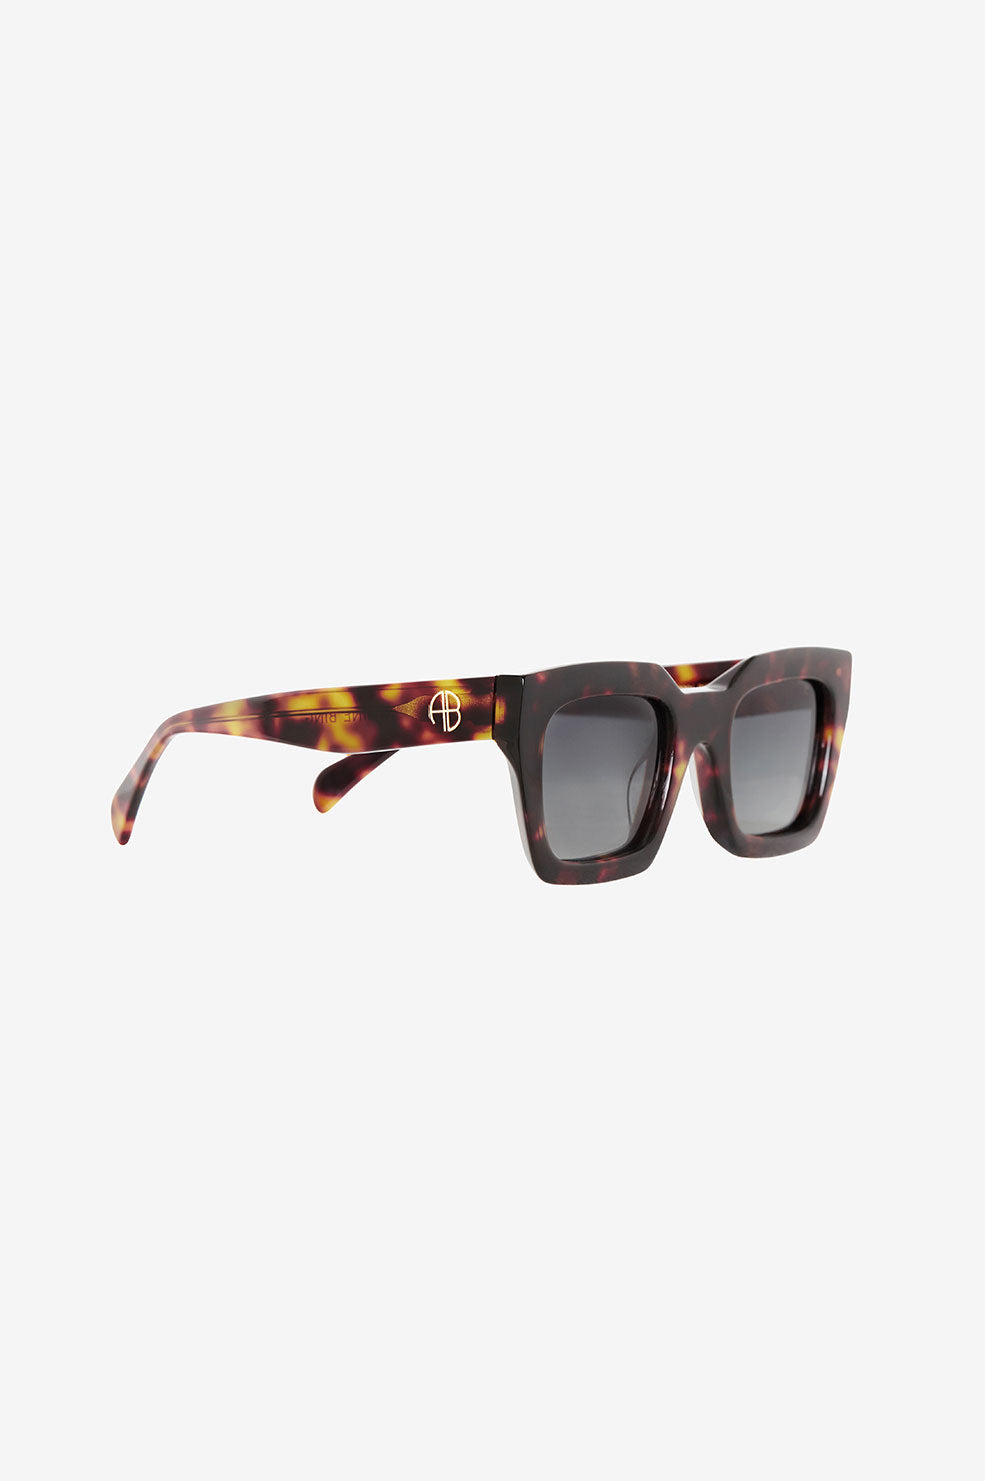 ANINE BING Indio Sunglasses - Dark Tortoise